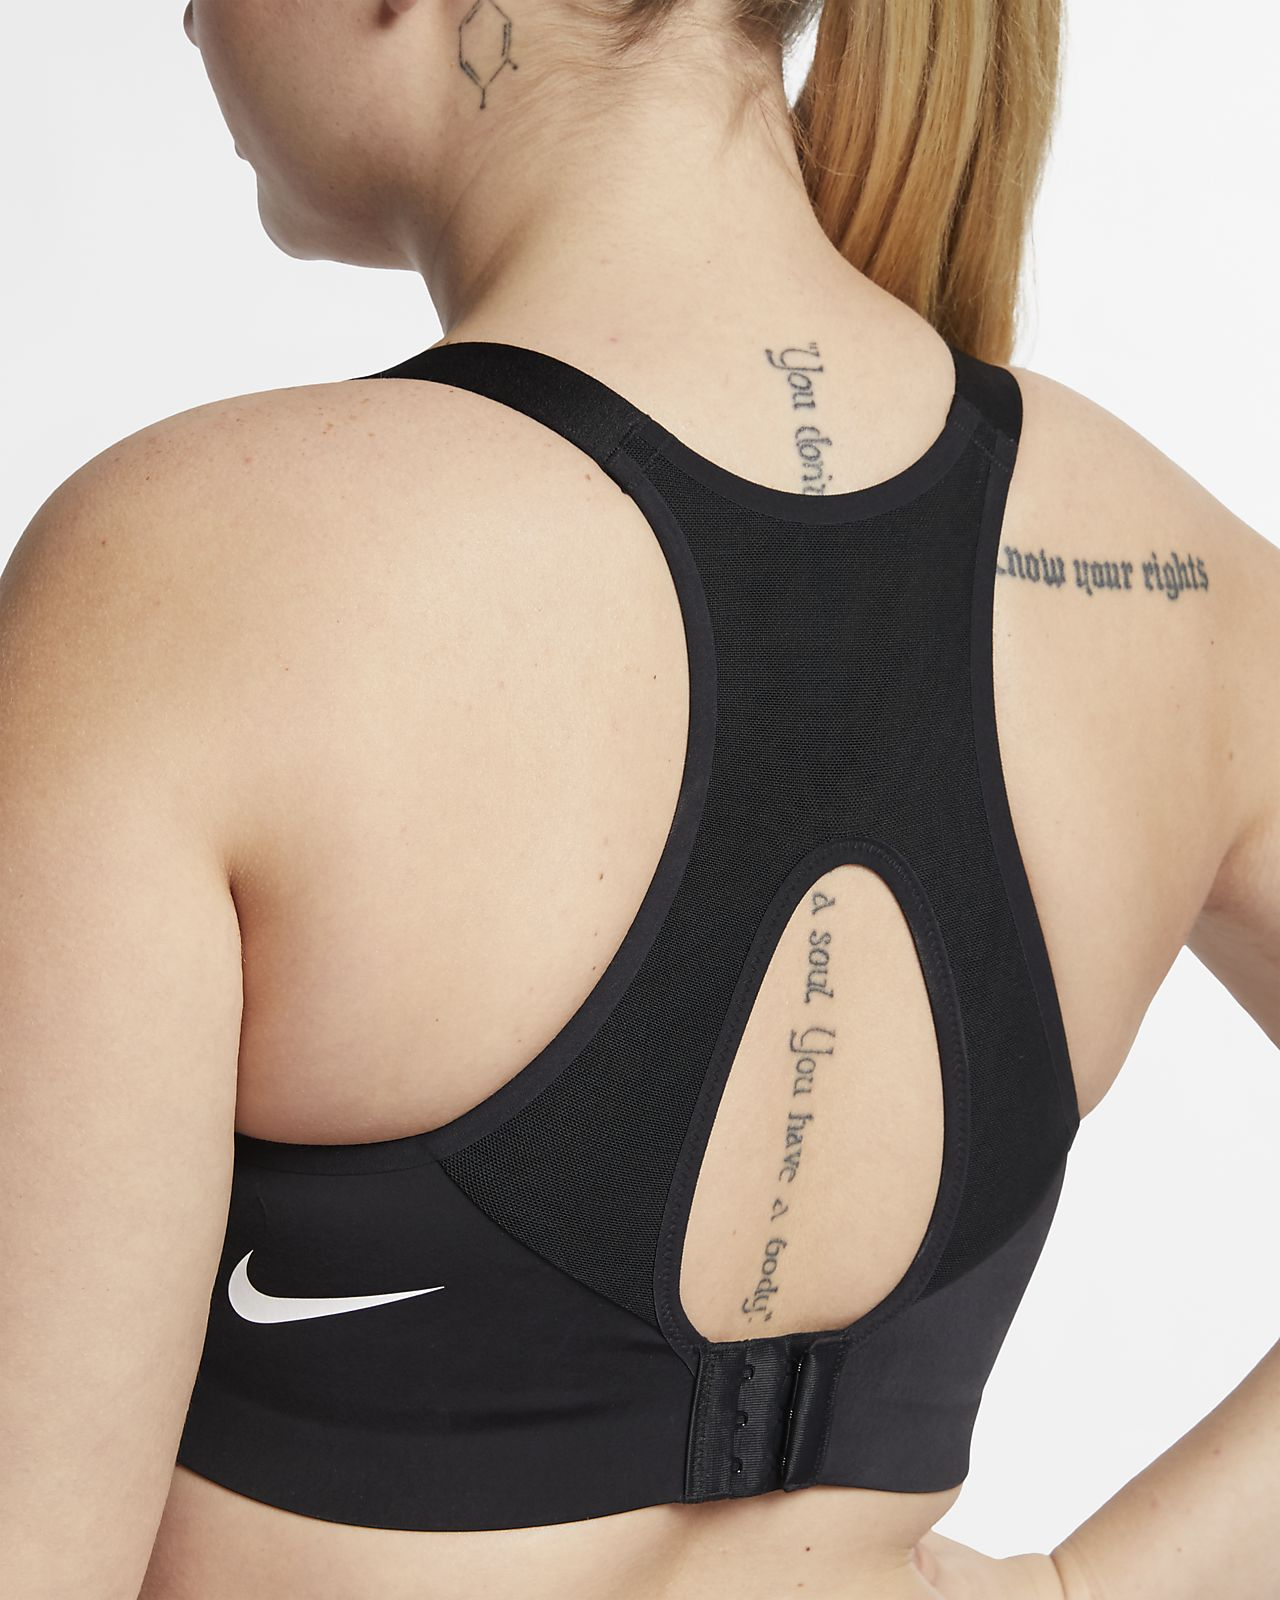 560c70cb5 Nike Rival Women s High-Support Sports Bra (Plus Size). Nike.com RO